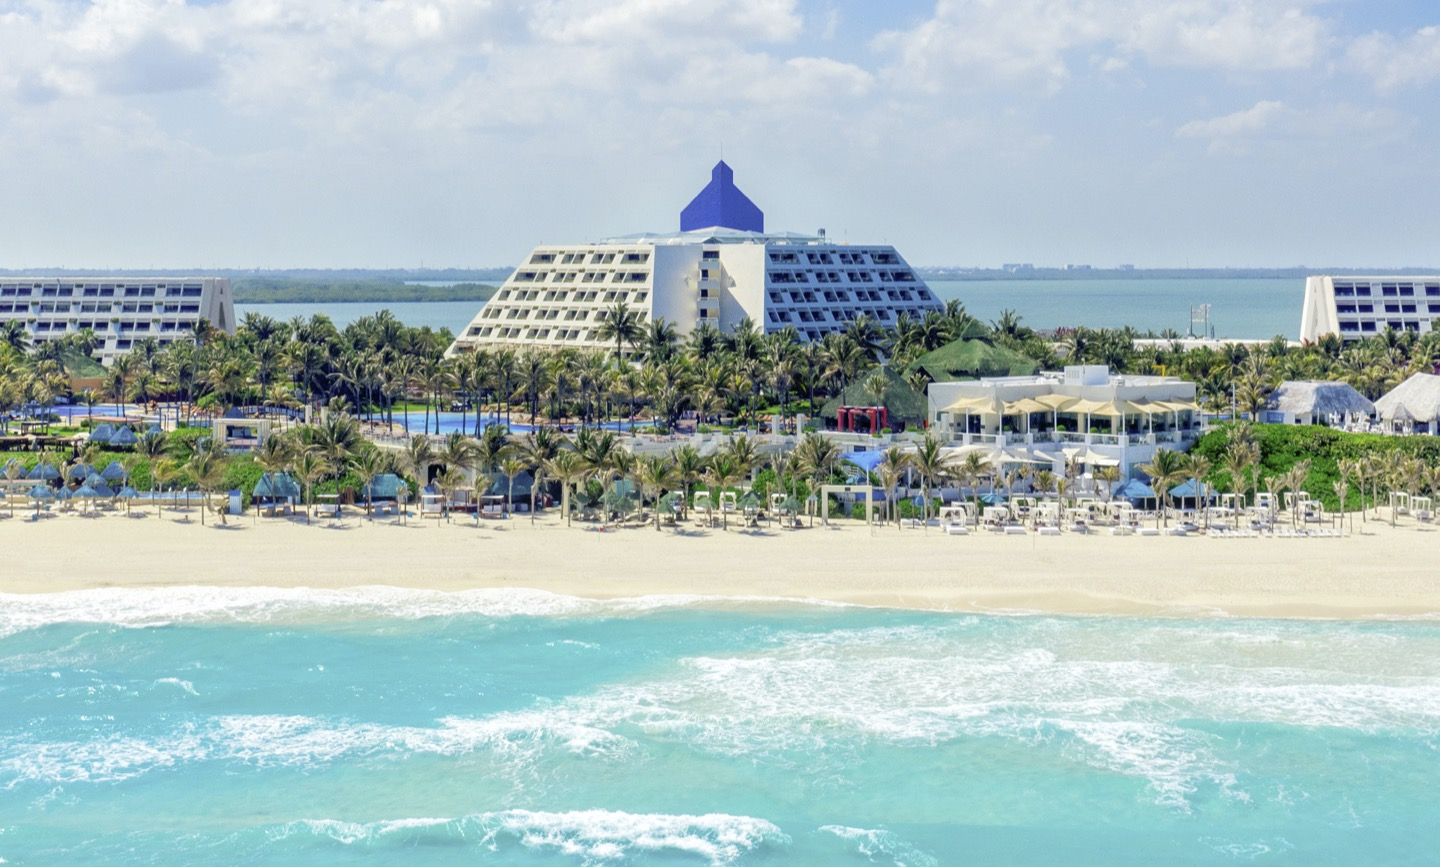 conoce The Pyramid at Grand Cancun